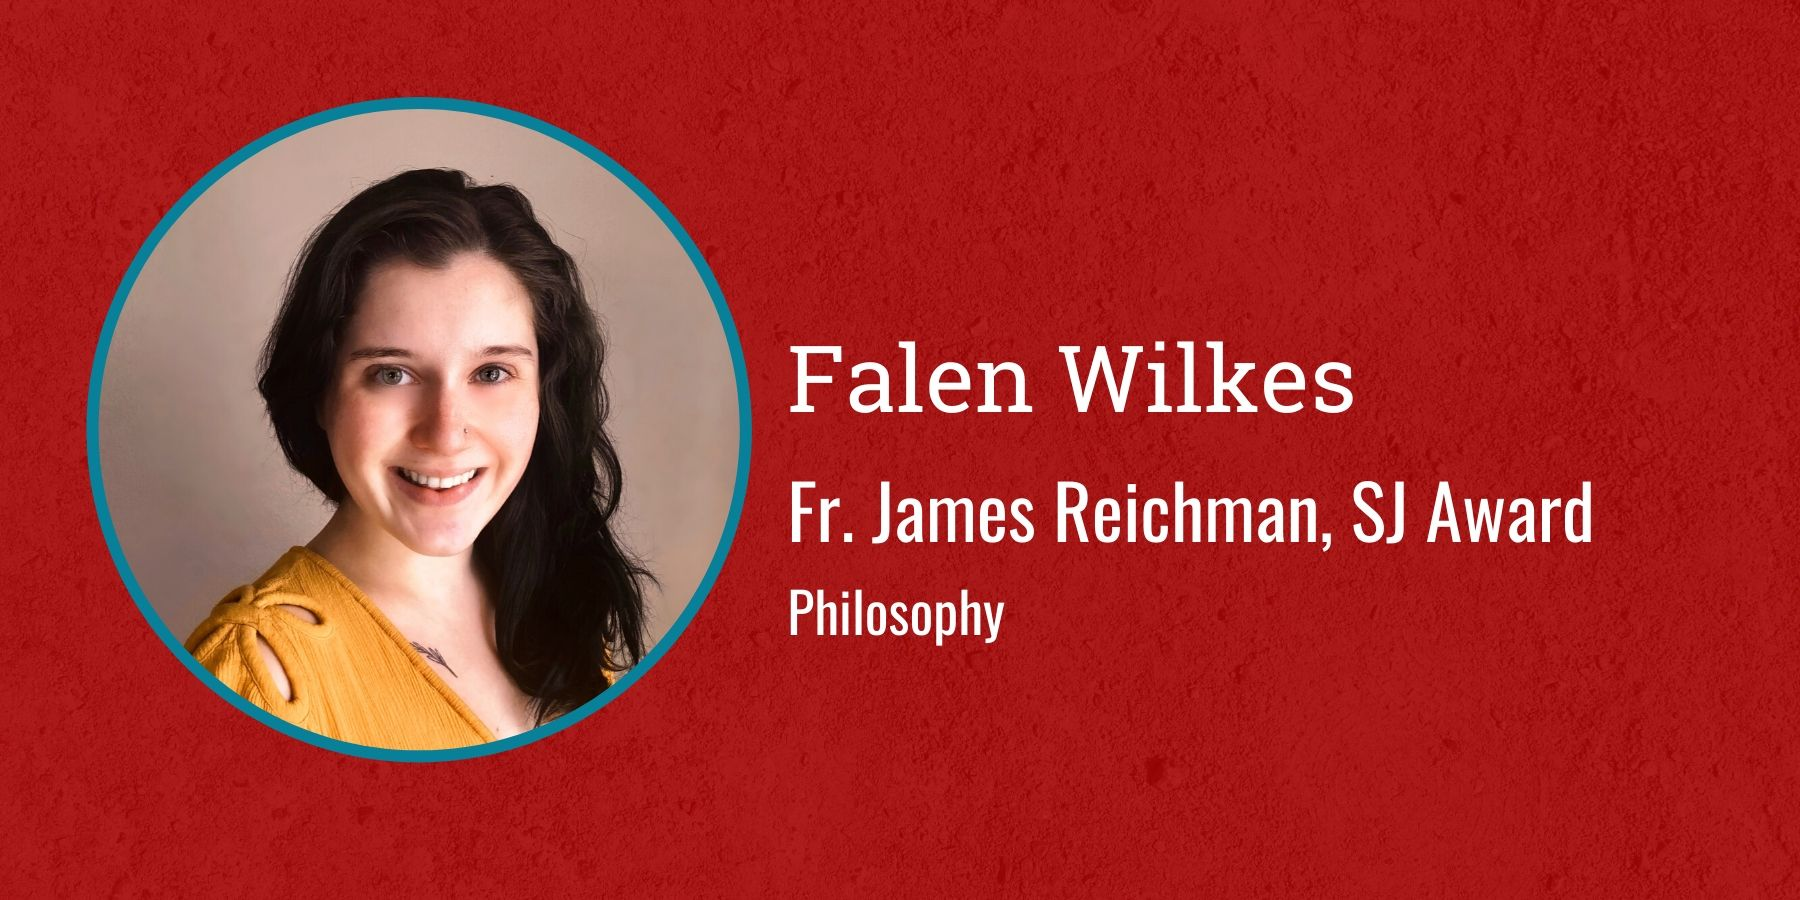 Photo of Falen Wilkes and text Fr. James Reichman, SJ Award, Philosophy